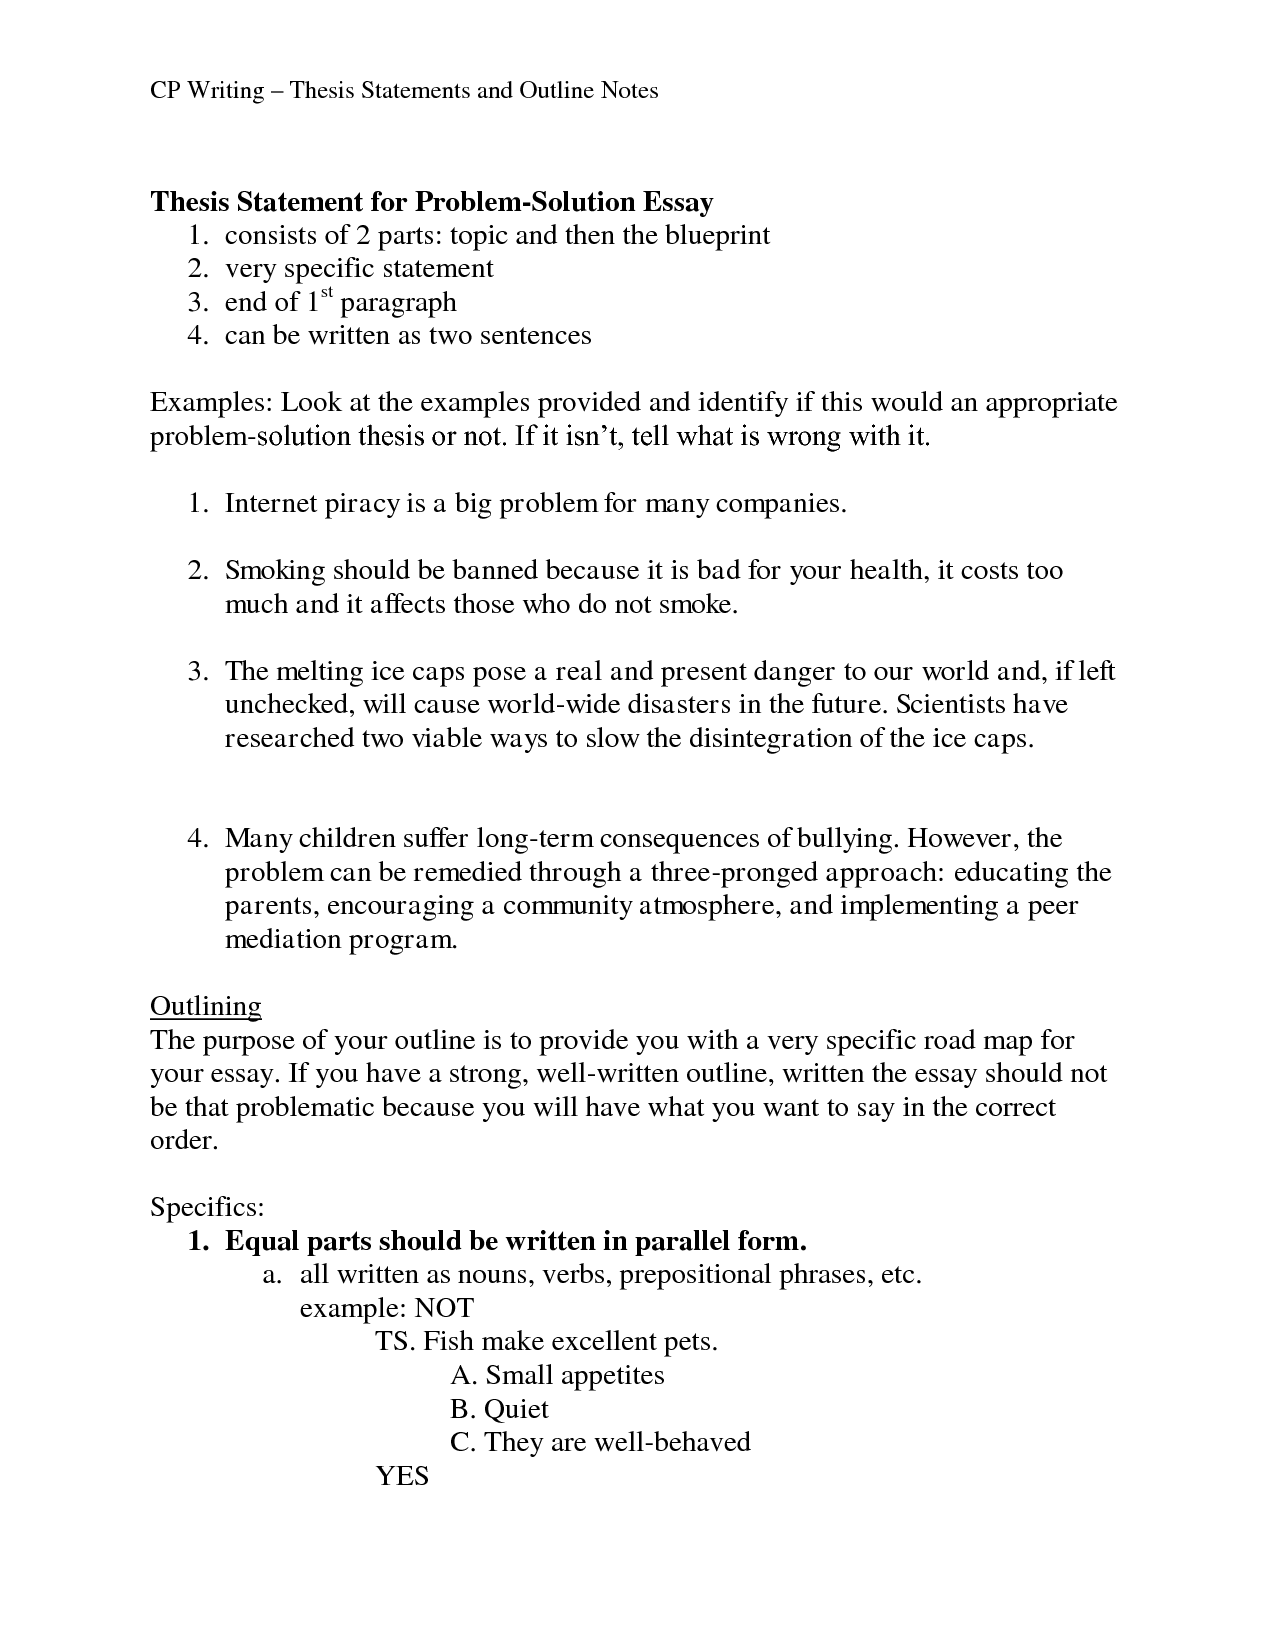 Total Quality Management Research Paper Total Quality Management 255 Development T Writing A Thesis Statement Problem Solution Essay Thesis Statement Examples